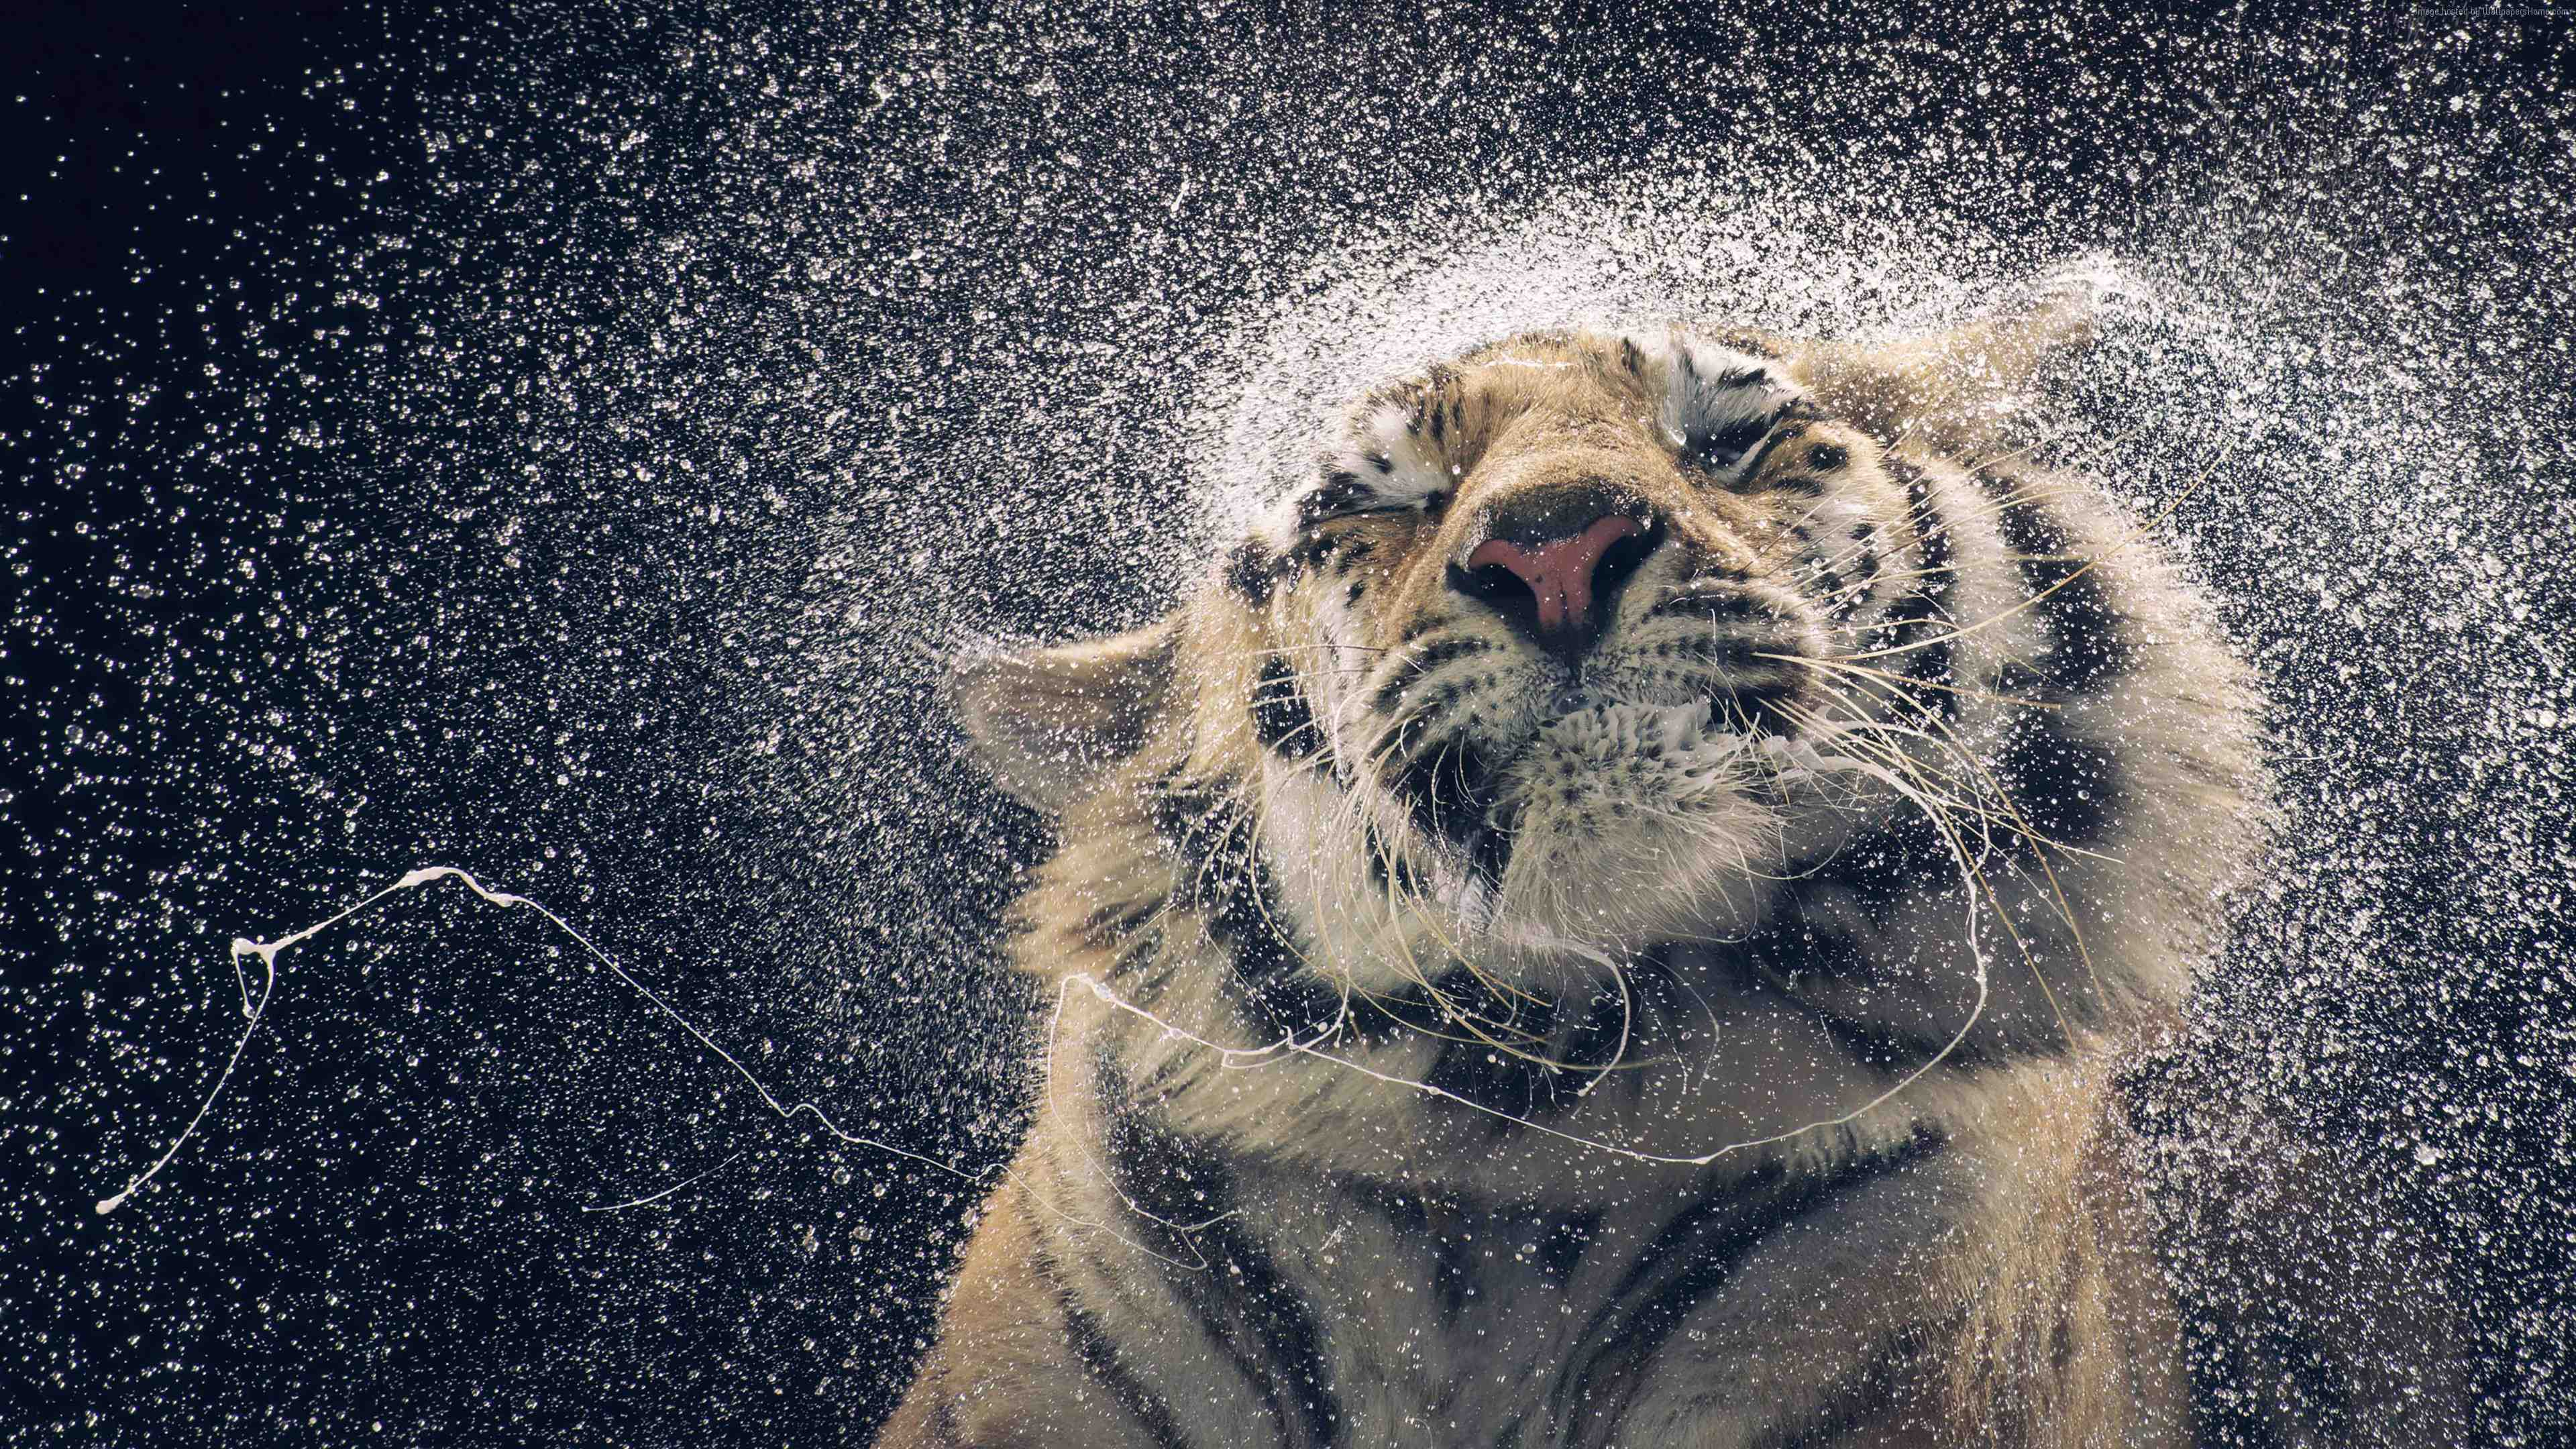 4K Tiger and Water